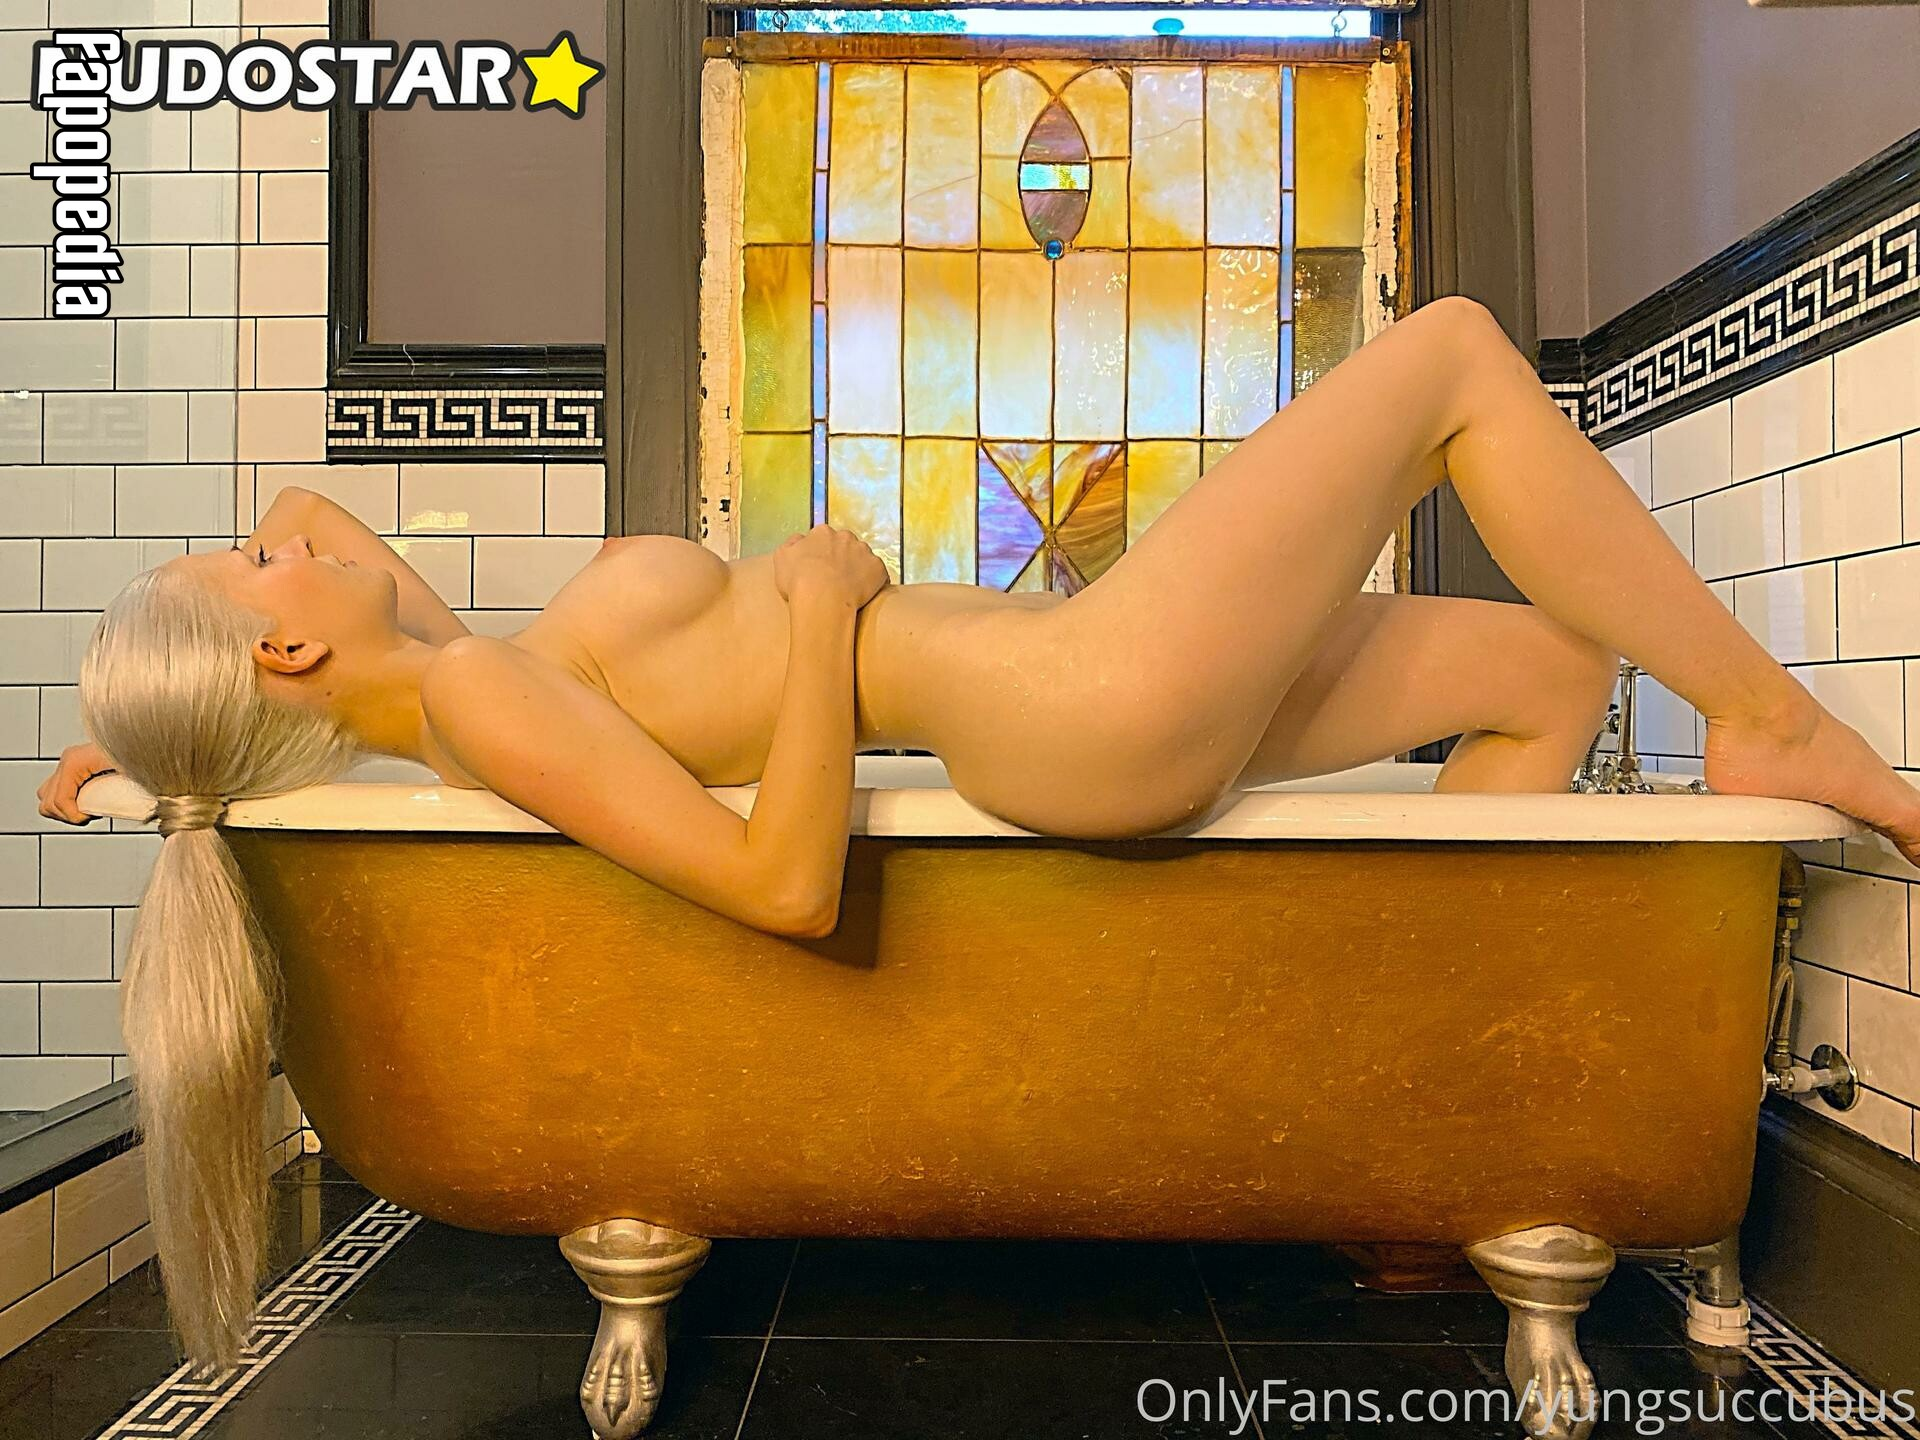 Yungsuccubus Nude OnlyFans Leaks